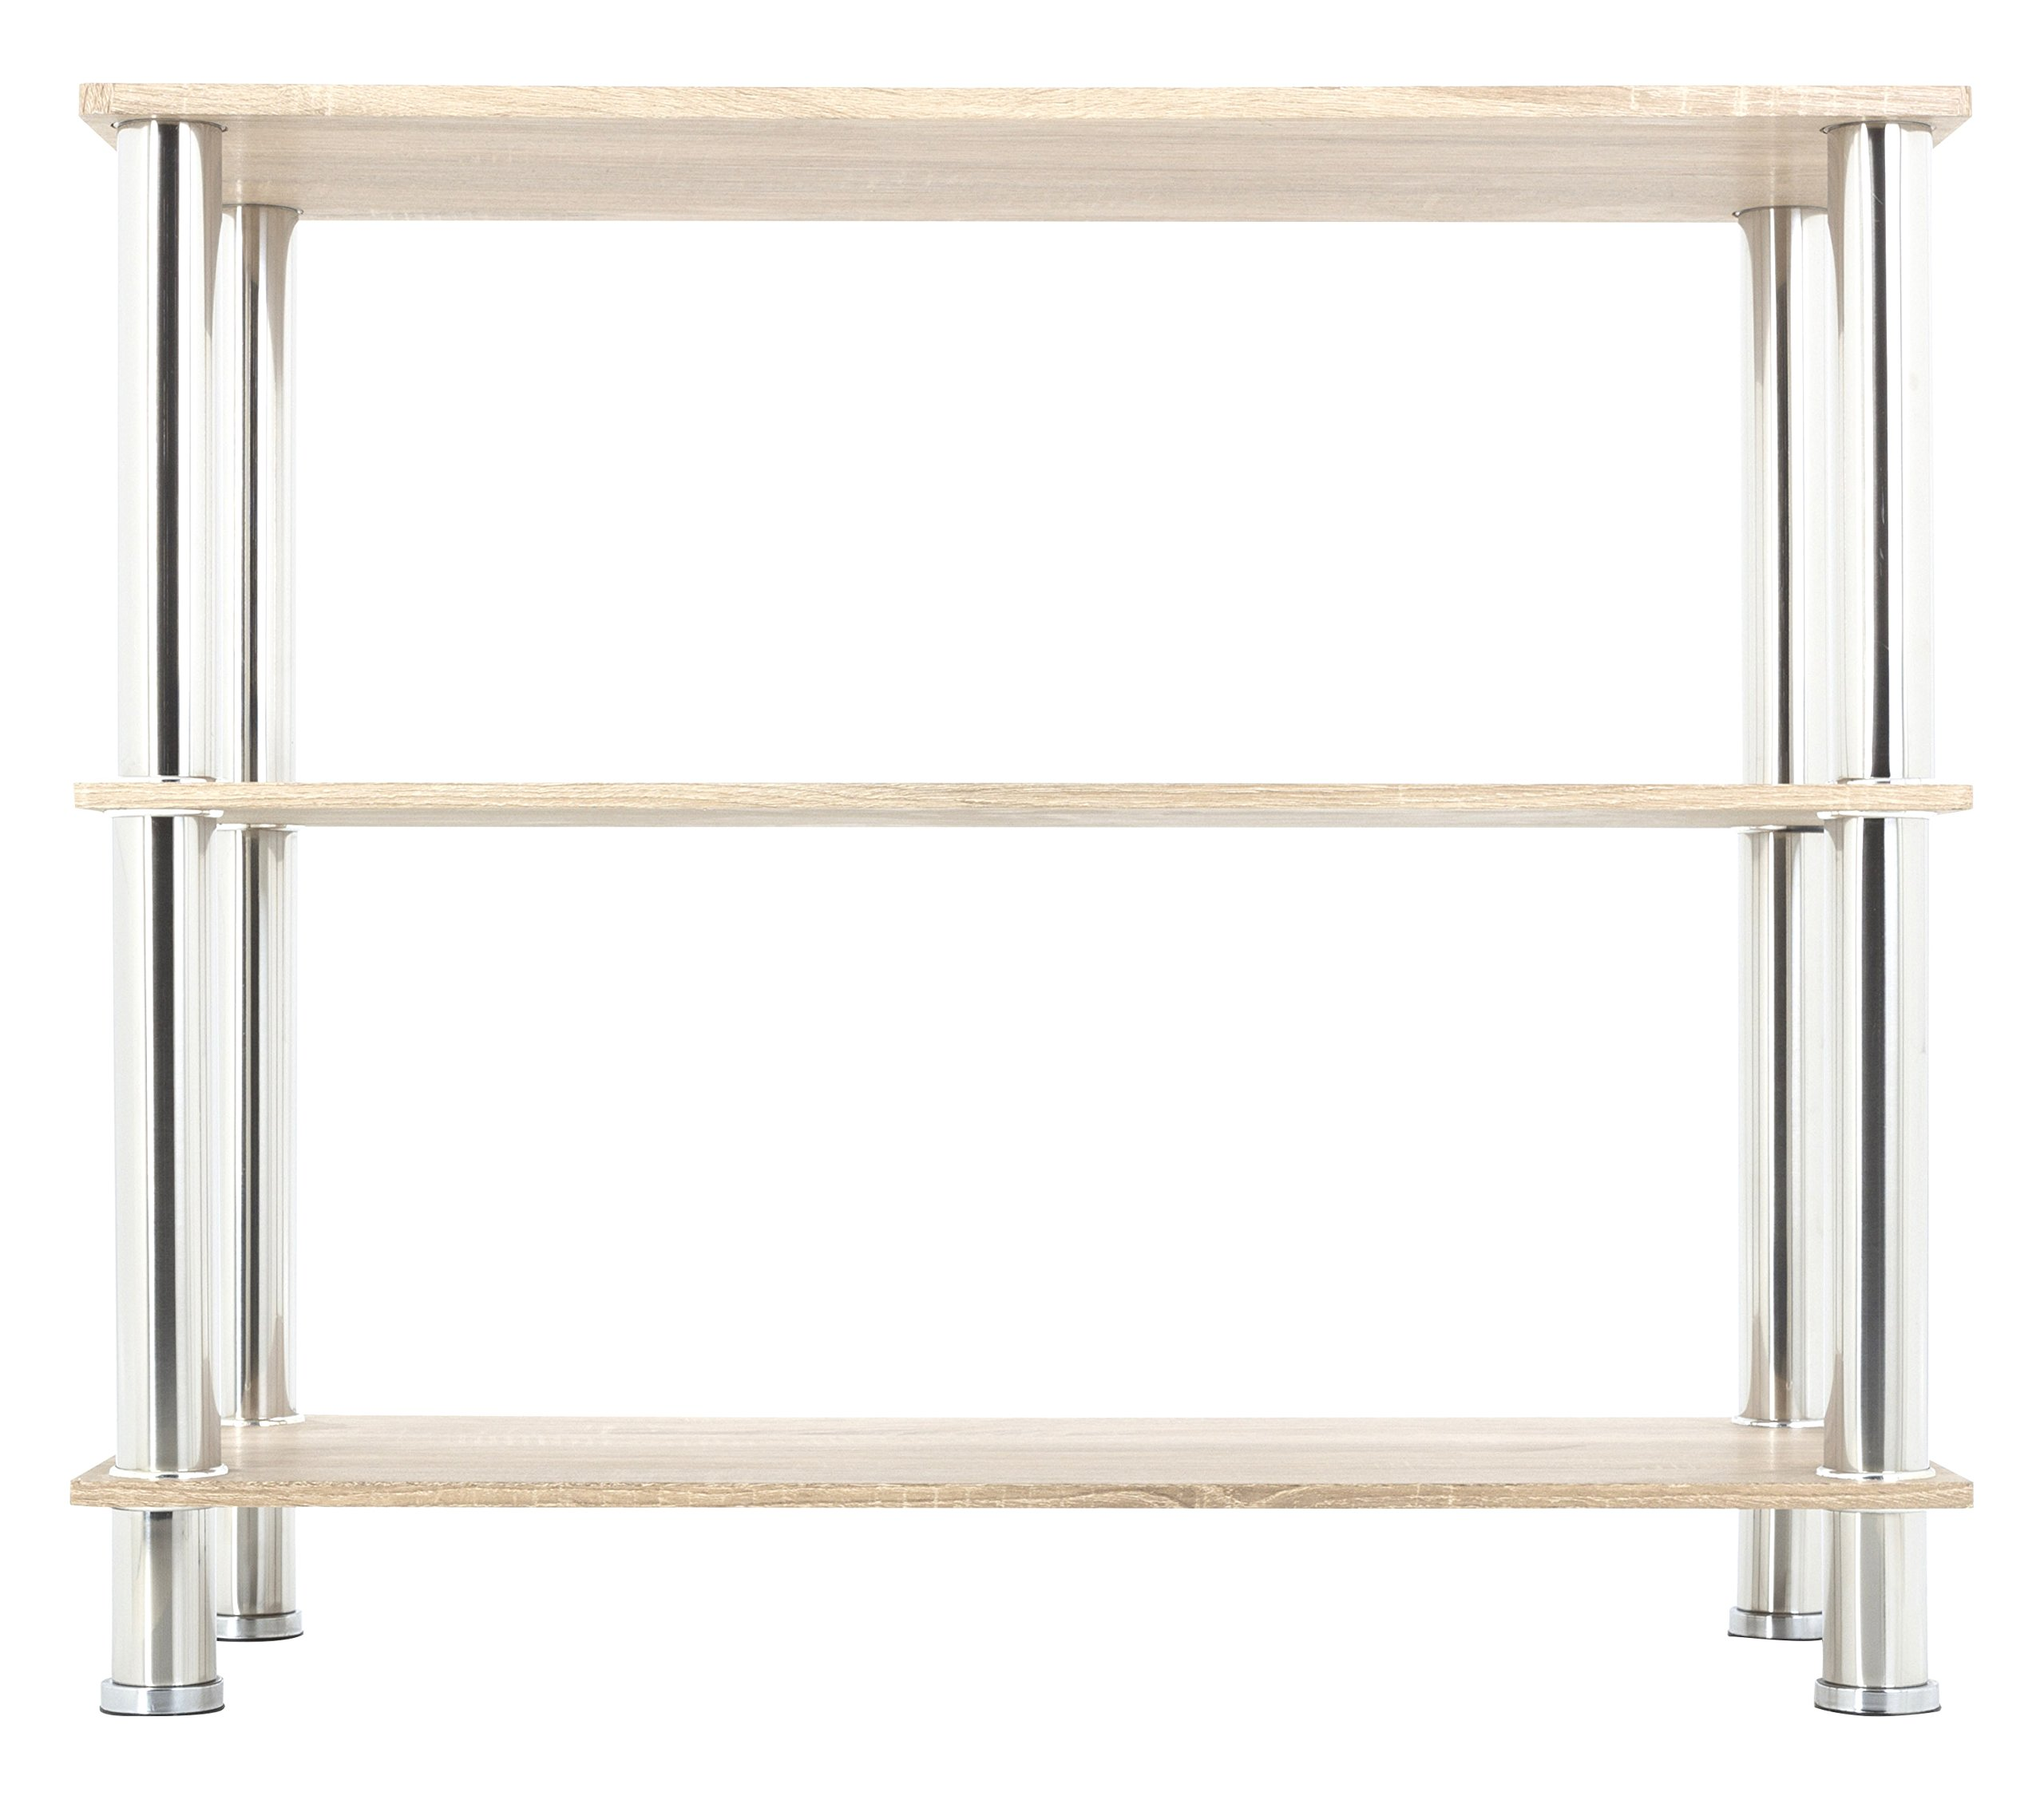 "AVF Wide 3 Tier Shelving unit in Whitewashed Oak & Chrome - Features chrome legs and whitewashed oak shelves Assembled product dimensions (W x D x H): 35.4 x 14.1 x 29.9"" Shelf dimensions (W x D): 35.4 x 14.1"" each - tv-stands, living-room-furniture, living-room - 81%2BGQ%2BLRNWL -"